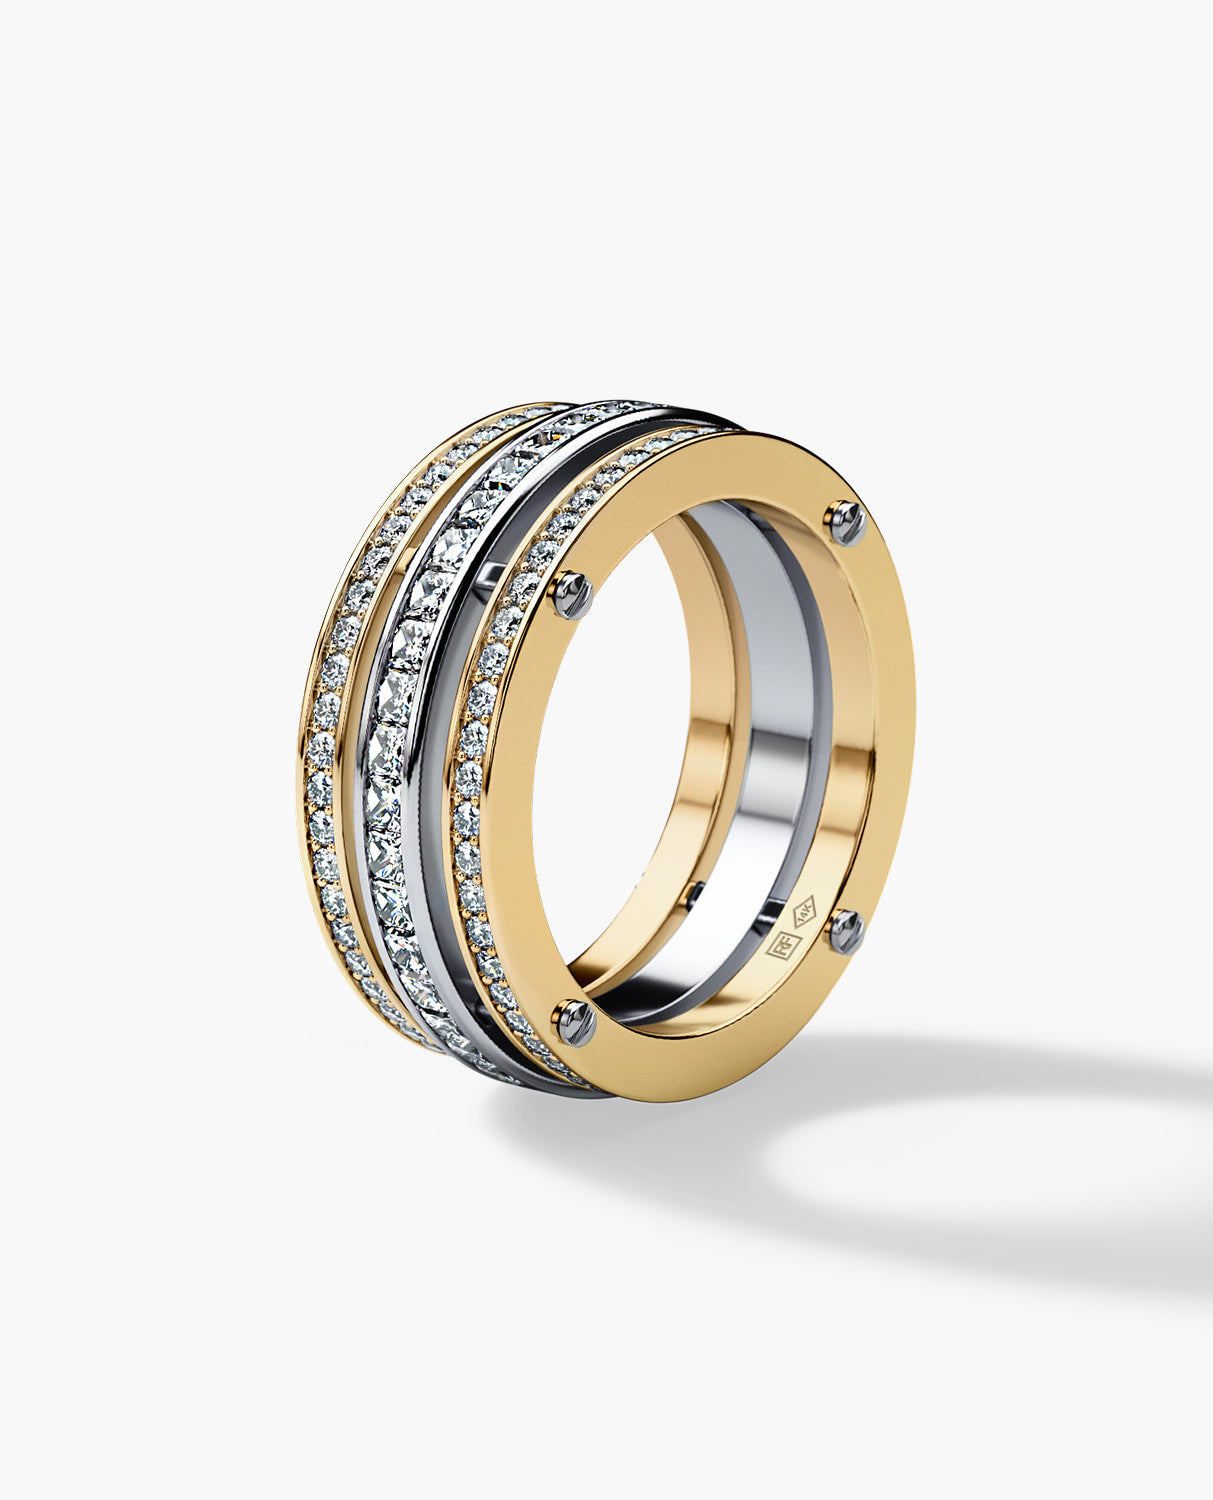 BREWER Mens Two-Tone Gold Wedding Band with Diamonds